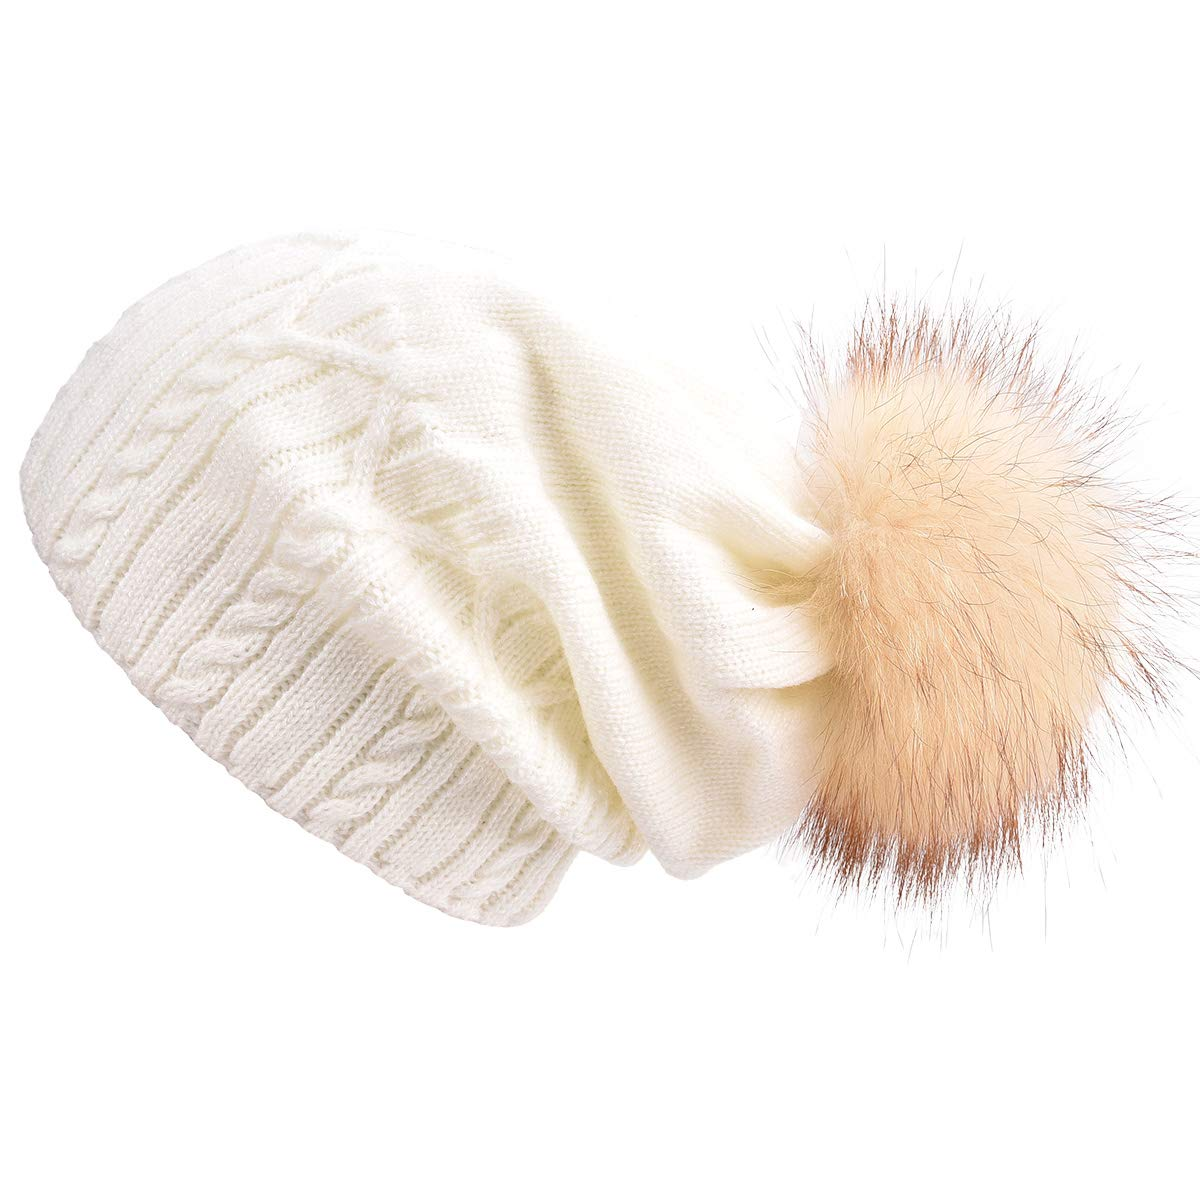 14c9a92e044b0 SOMALER Winter Hats for Women Real Fur pom pom Beanie Slouchy Beanies  Kintted hat 6 Colors